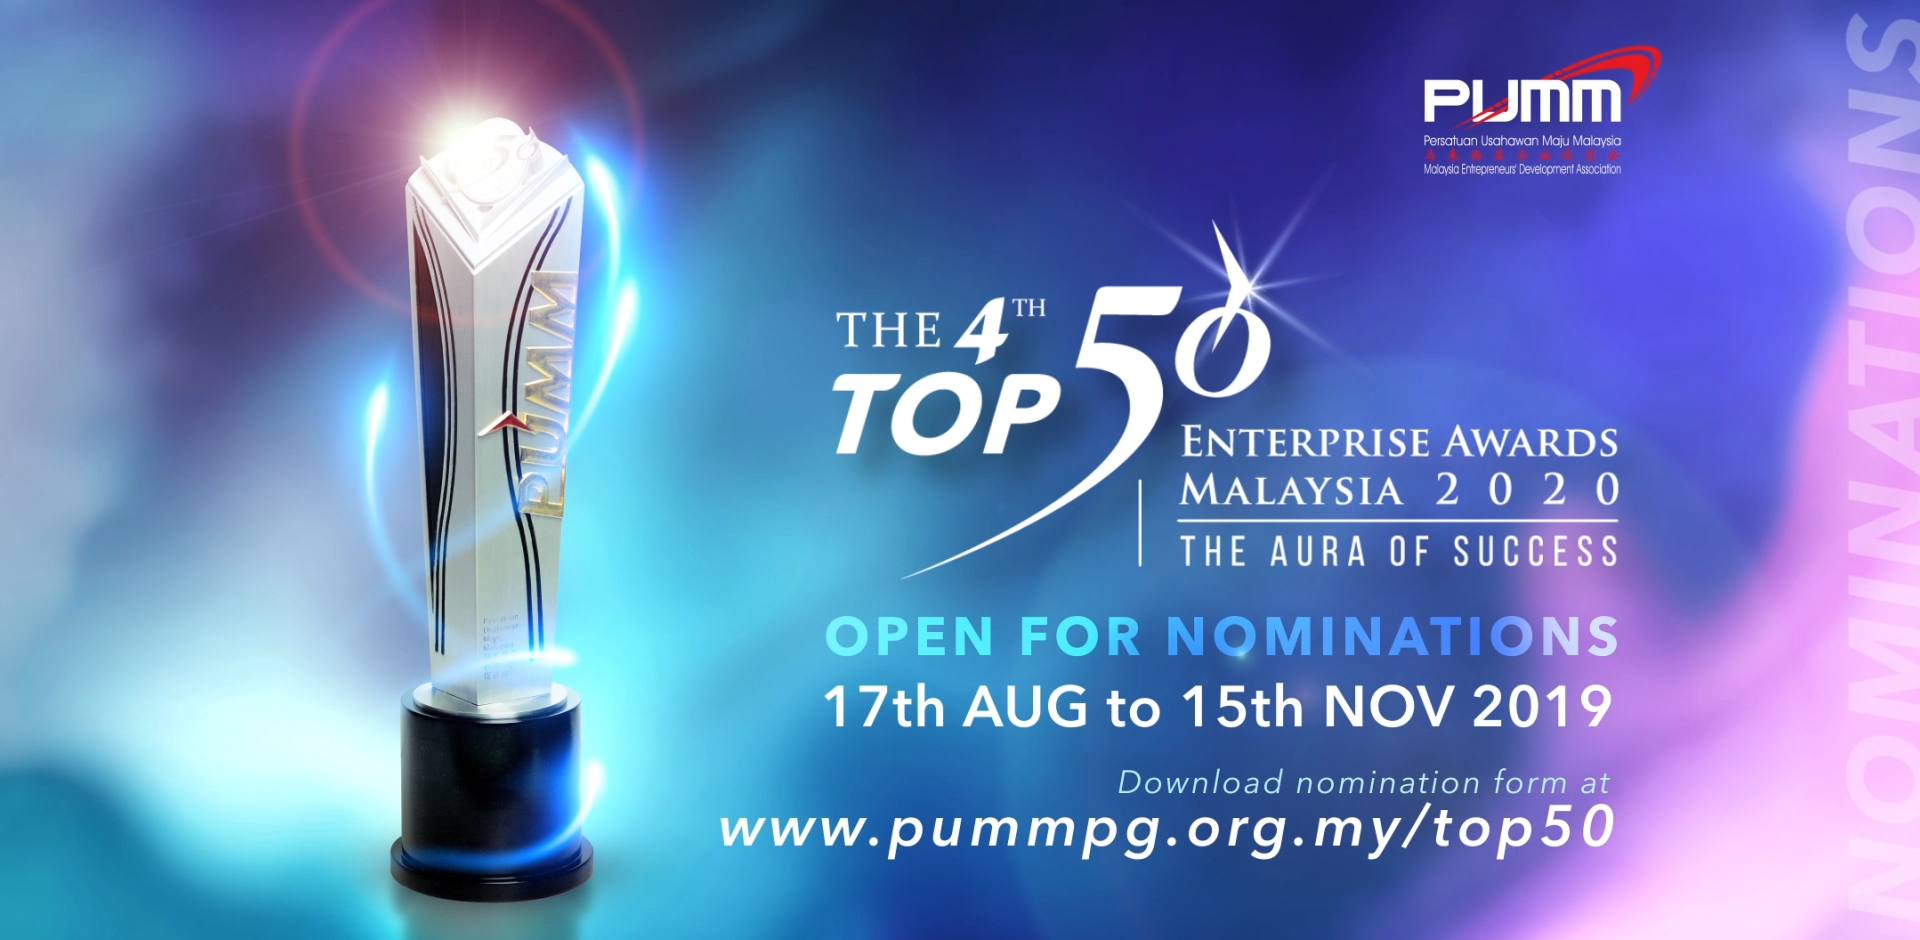 The 4th Top 50 Enterprise Awards Malaysia 2020